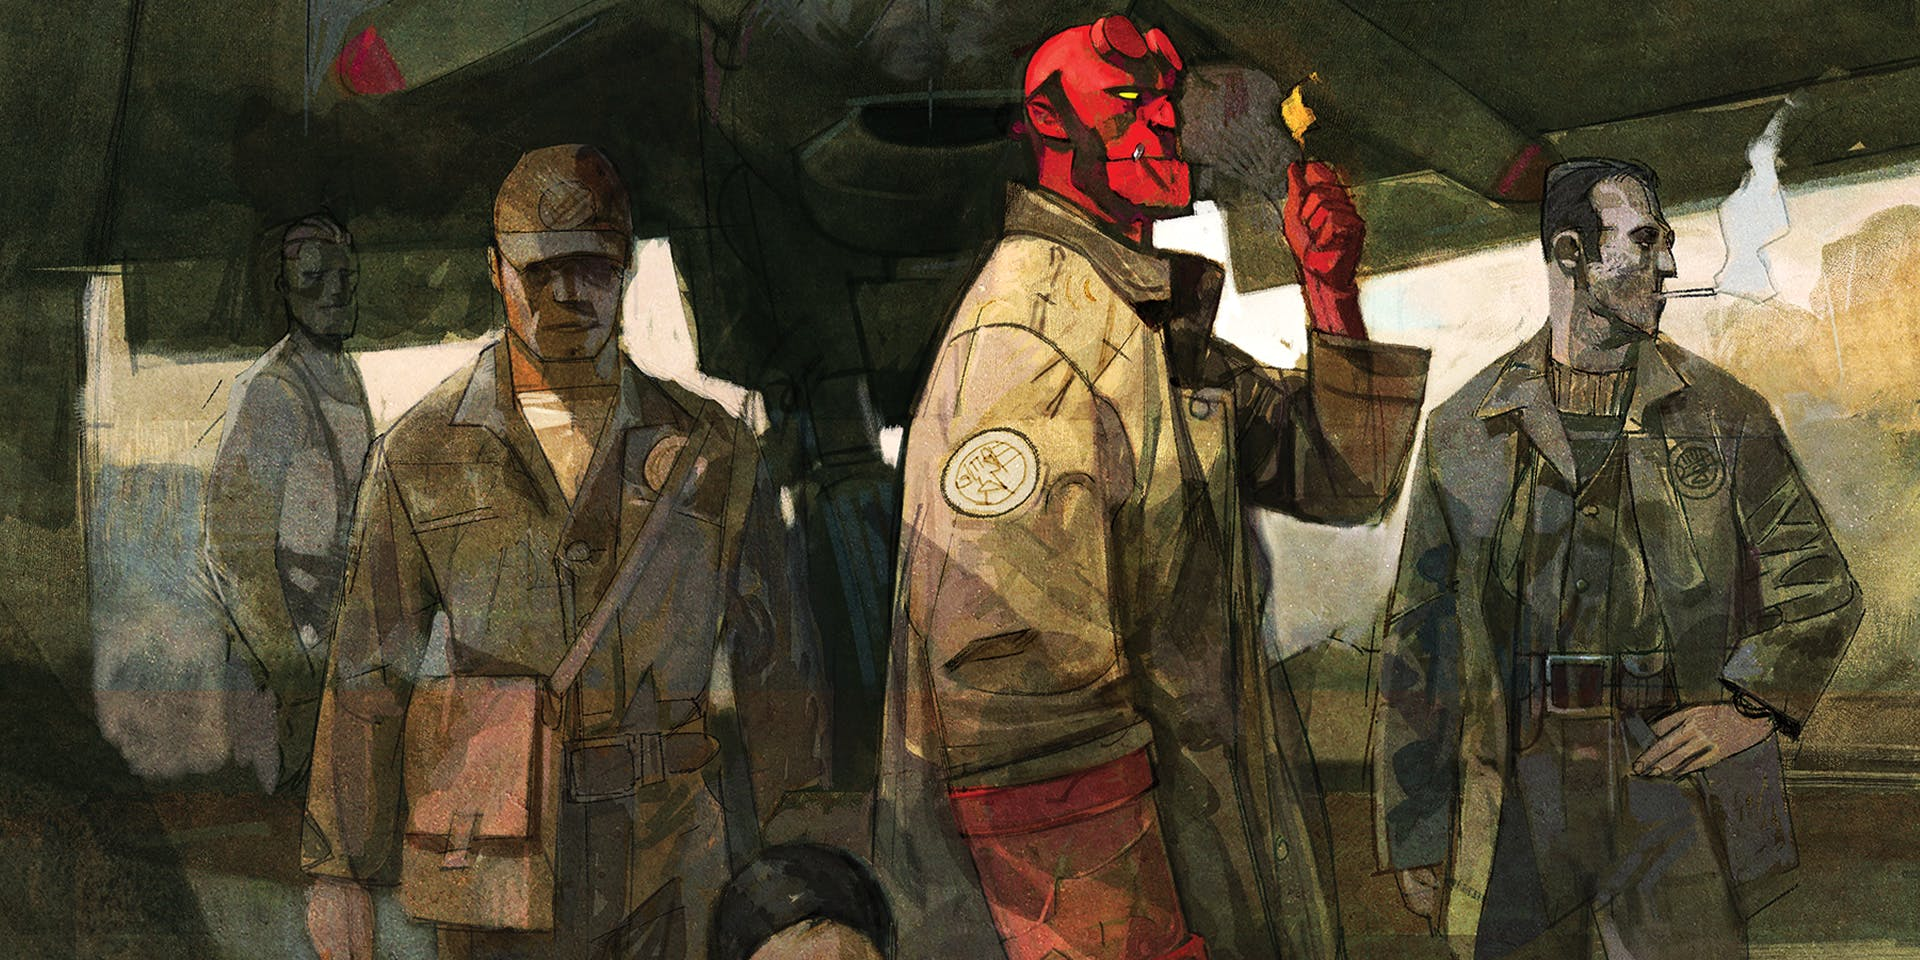 Hellboy: Rise of the Blood Queen trailer